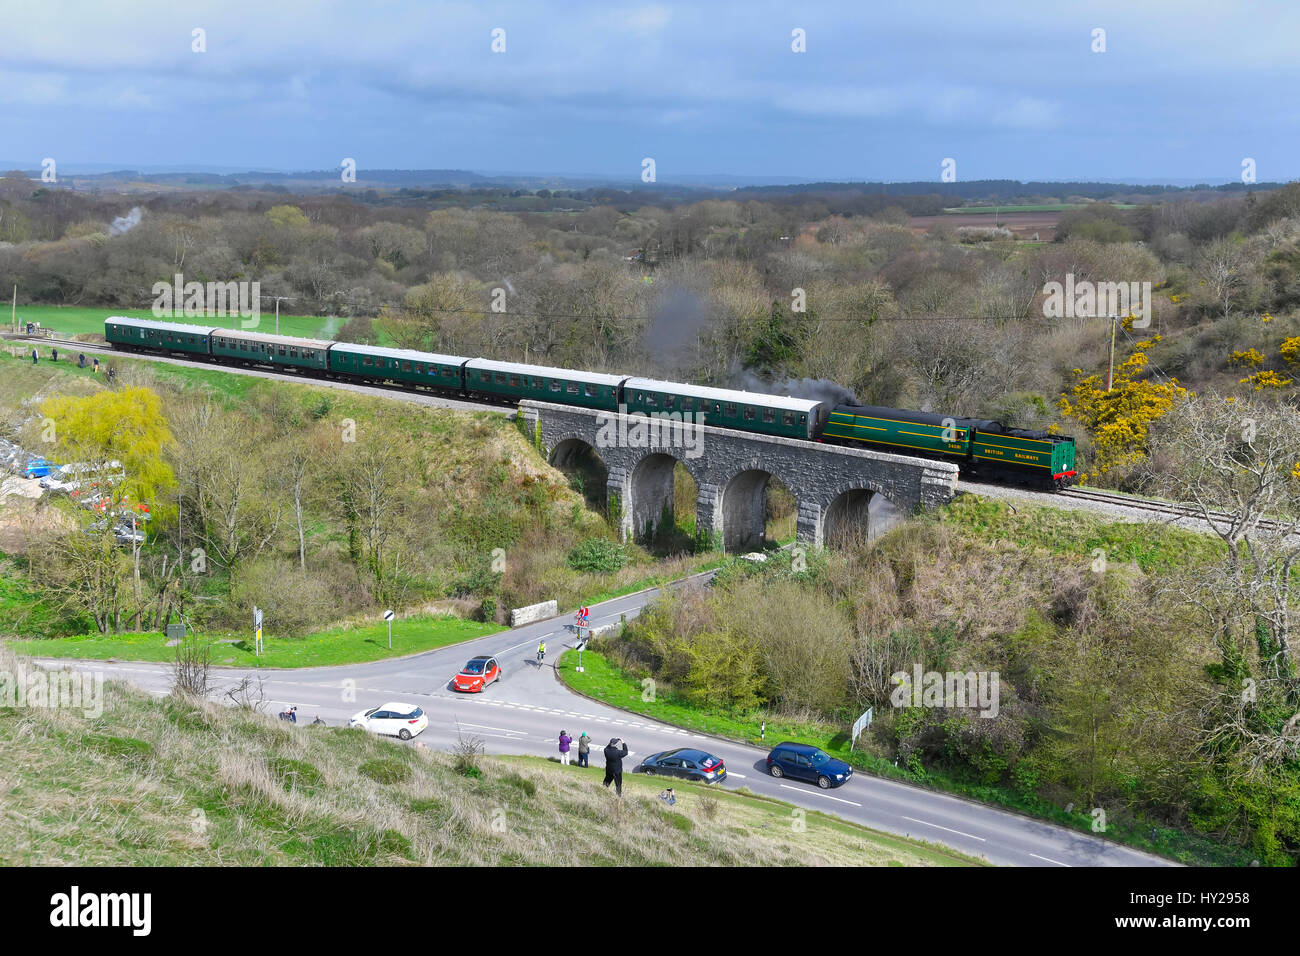 Corfe Castle, Dorset, UK. 31st Mar, 2017. The Swanage Railway hosting a steam gala over 3 days with Bulleid locomotives - Stock Image